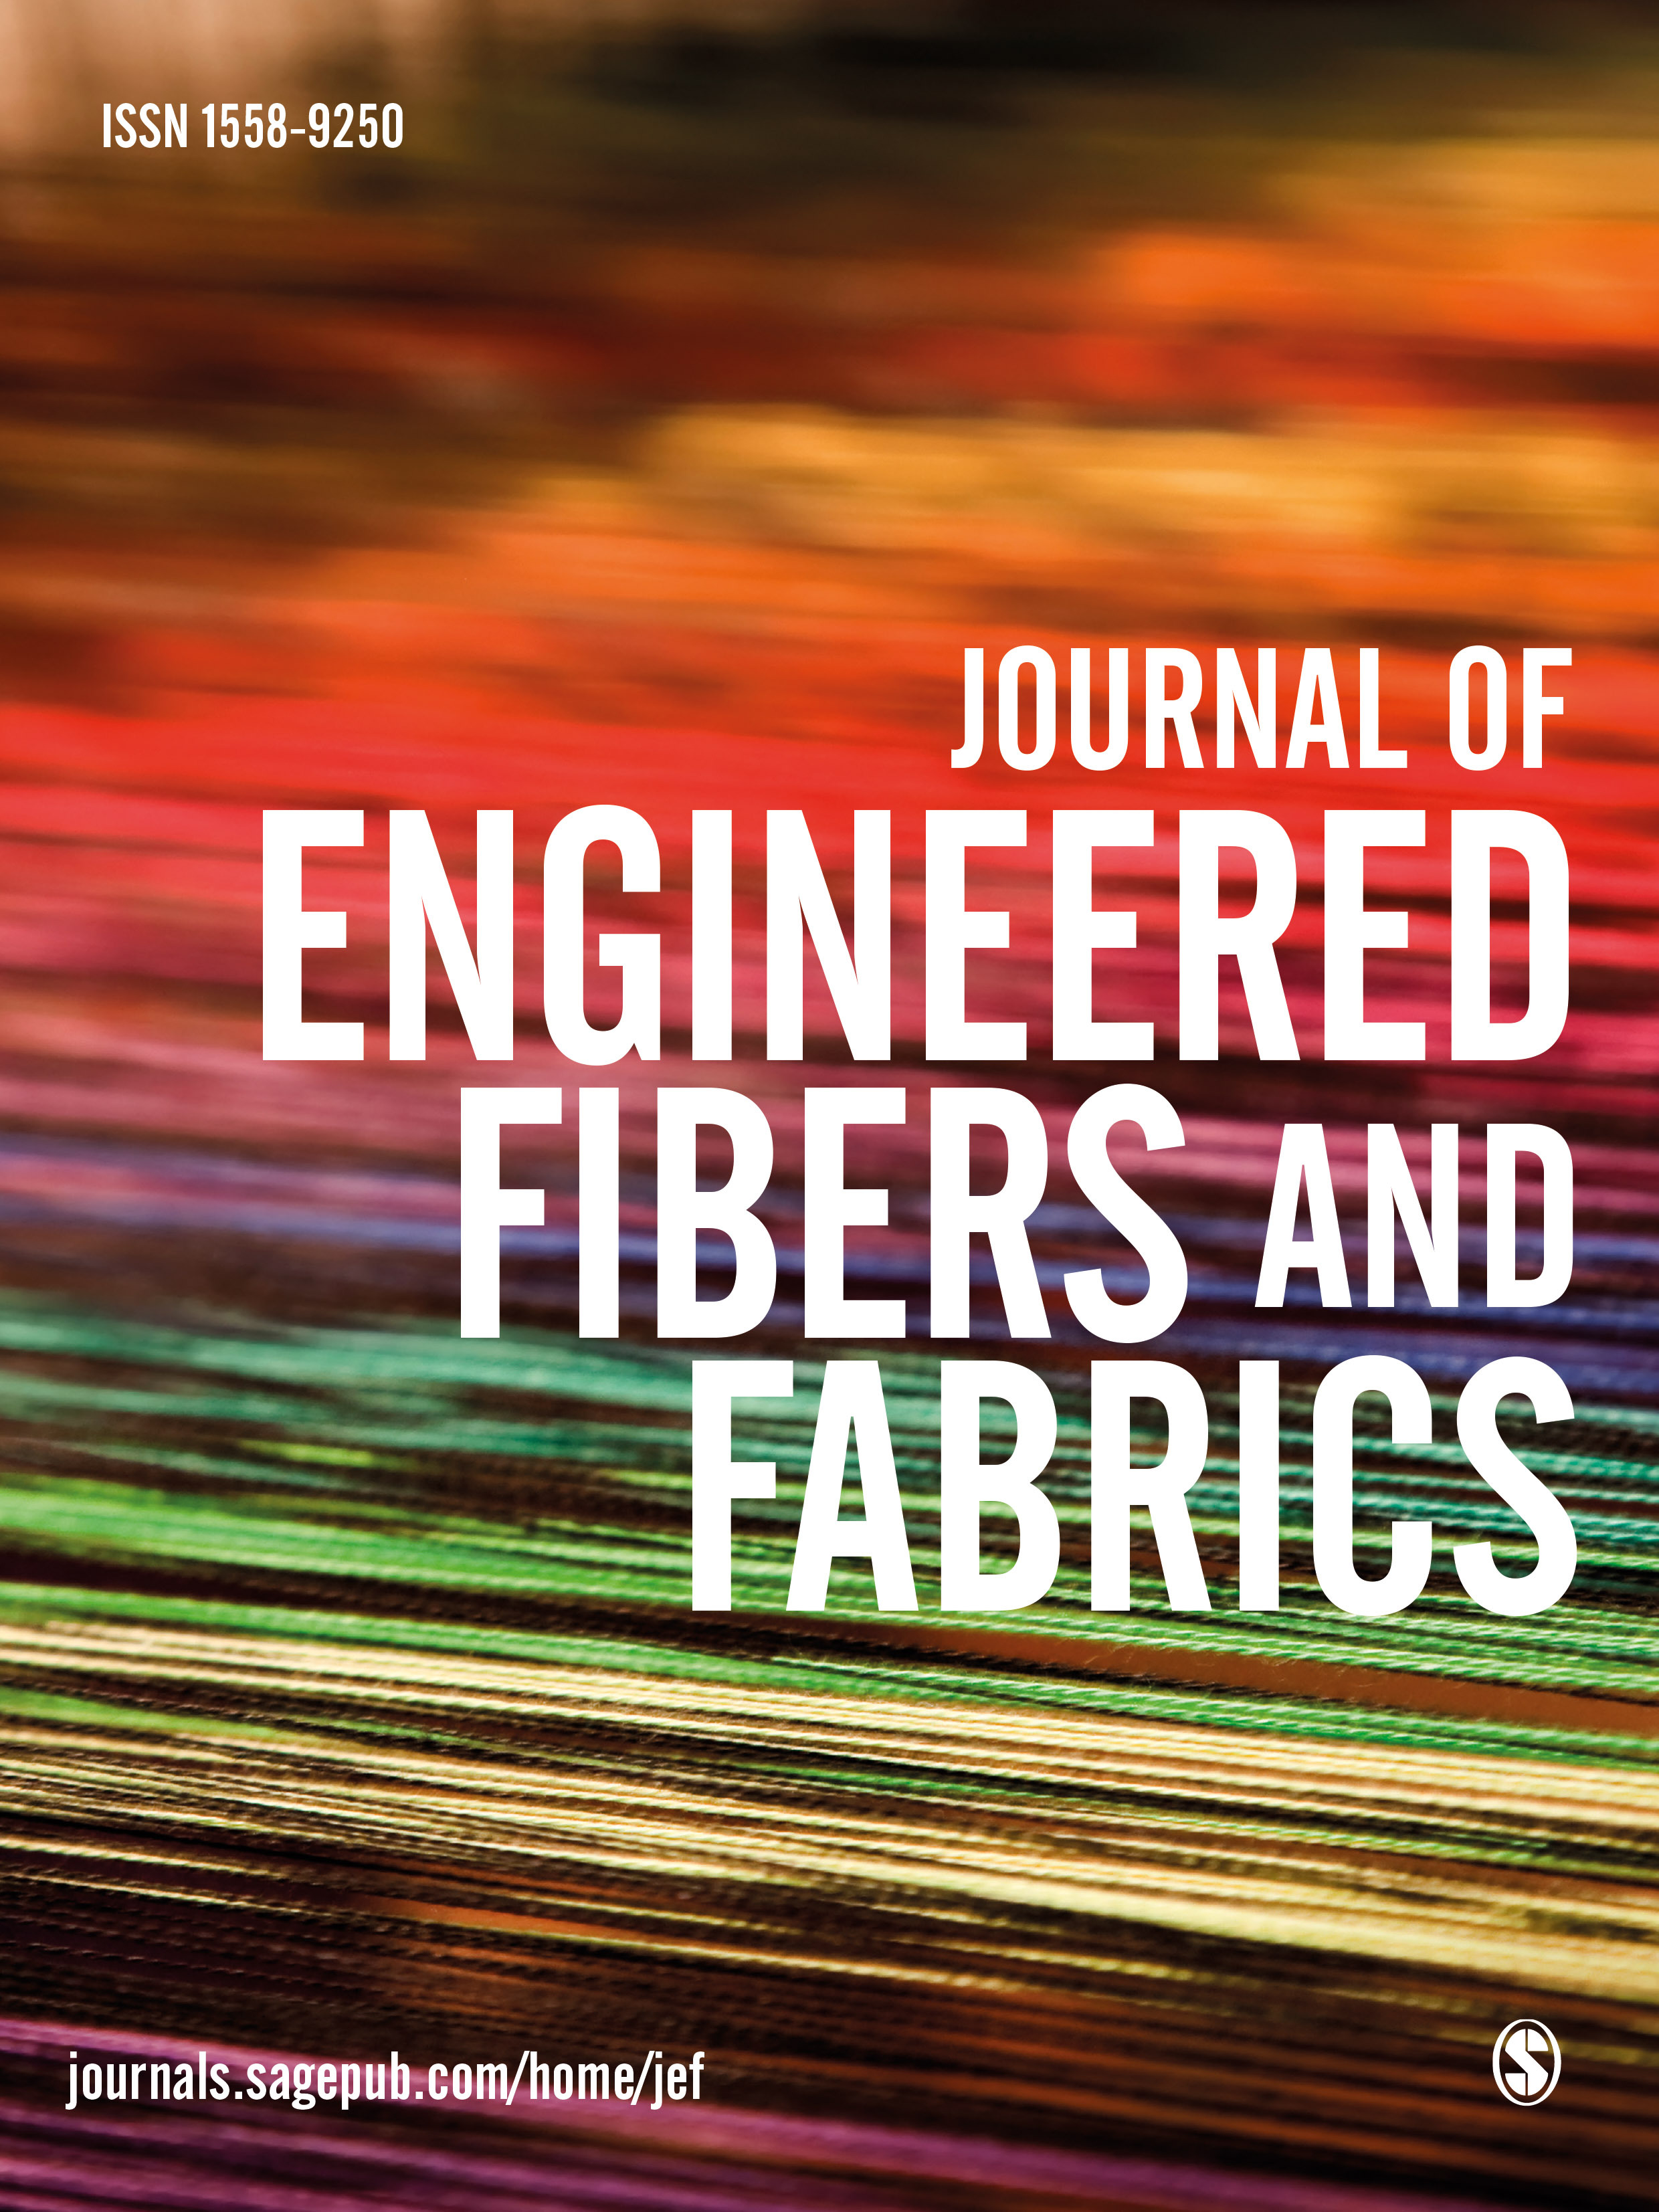 Journal of Engineered Fibers and Fabrics